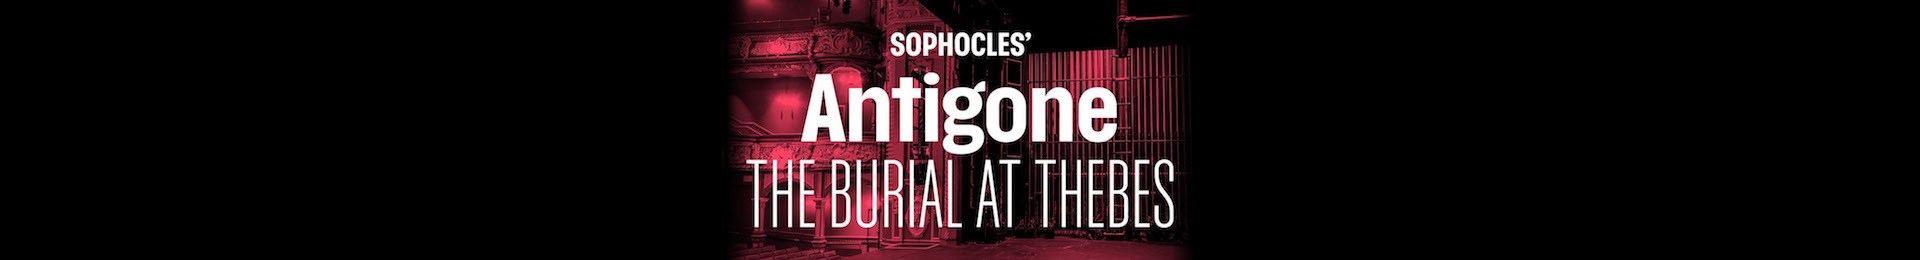 Sophocles' Antigone: The Burial at Thebes banner image